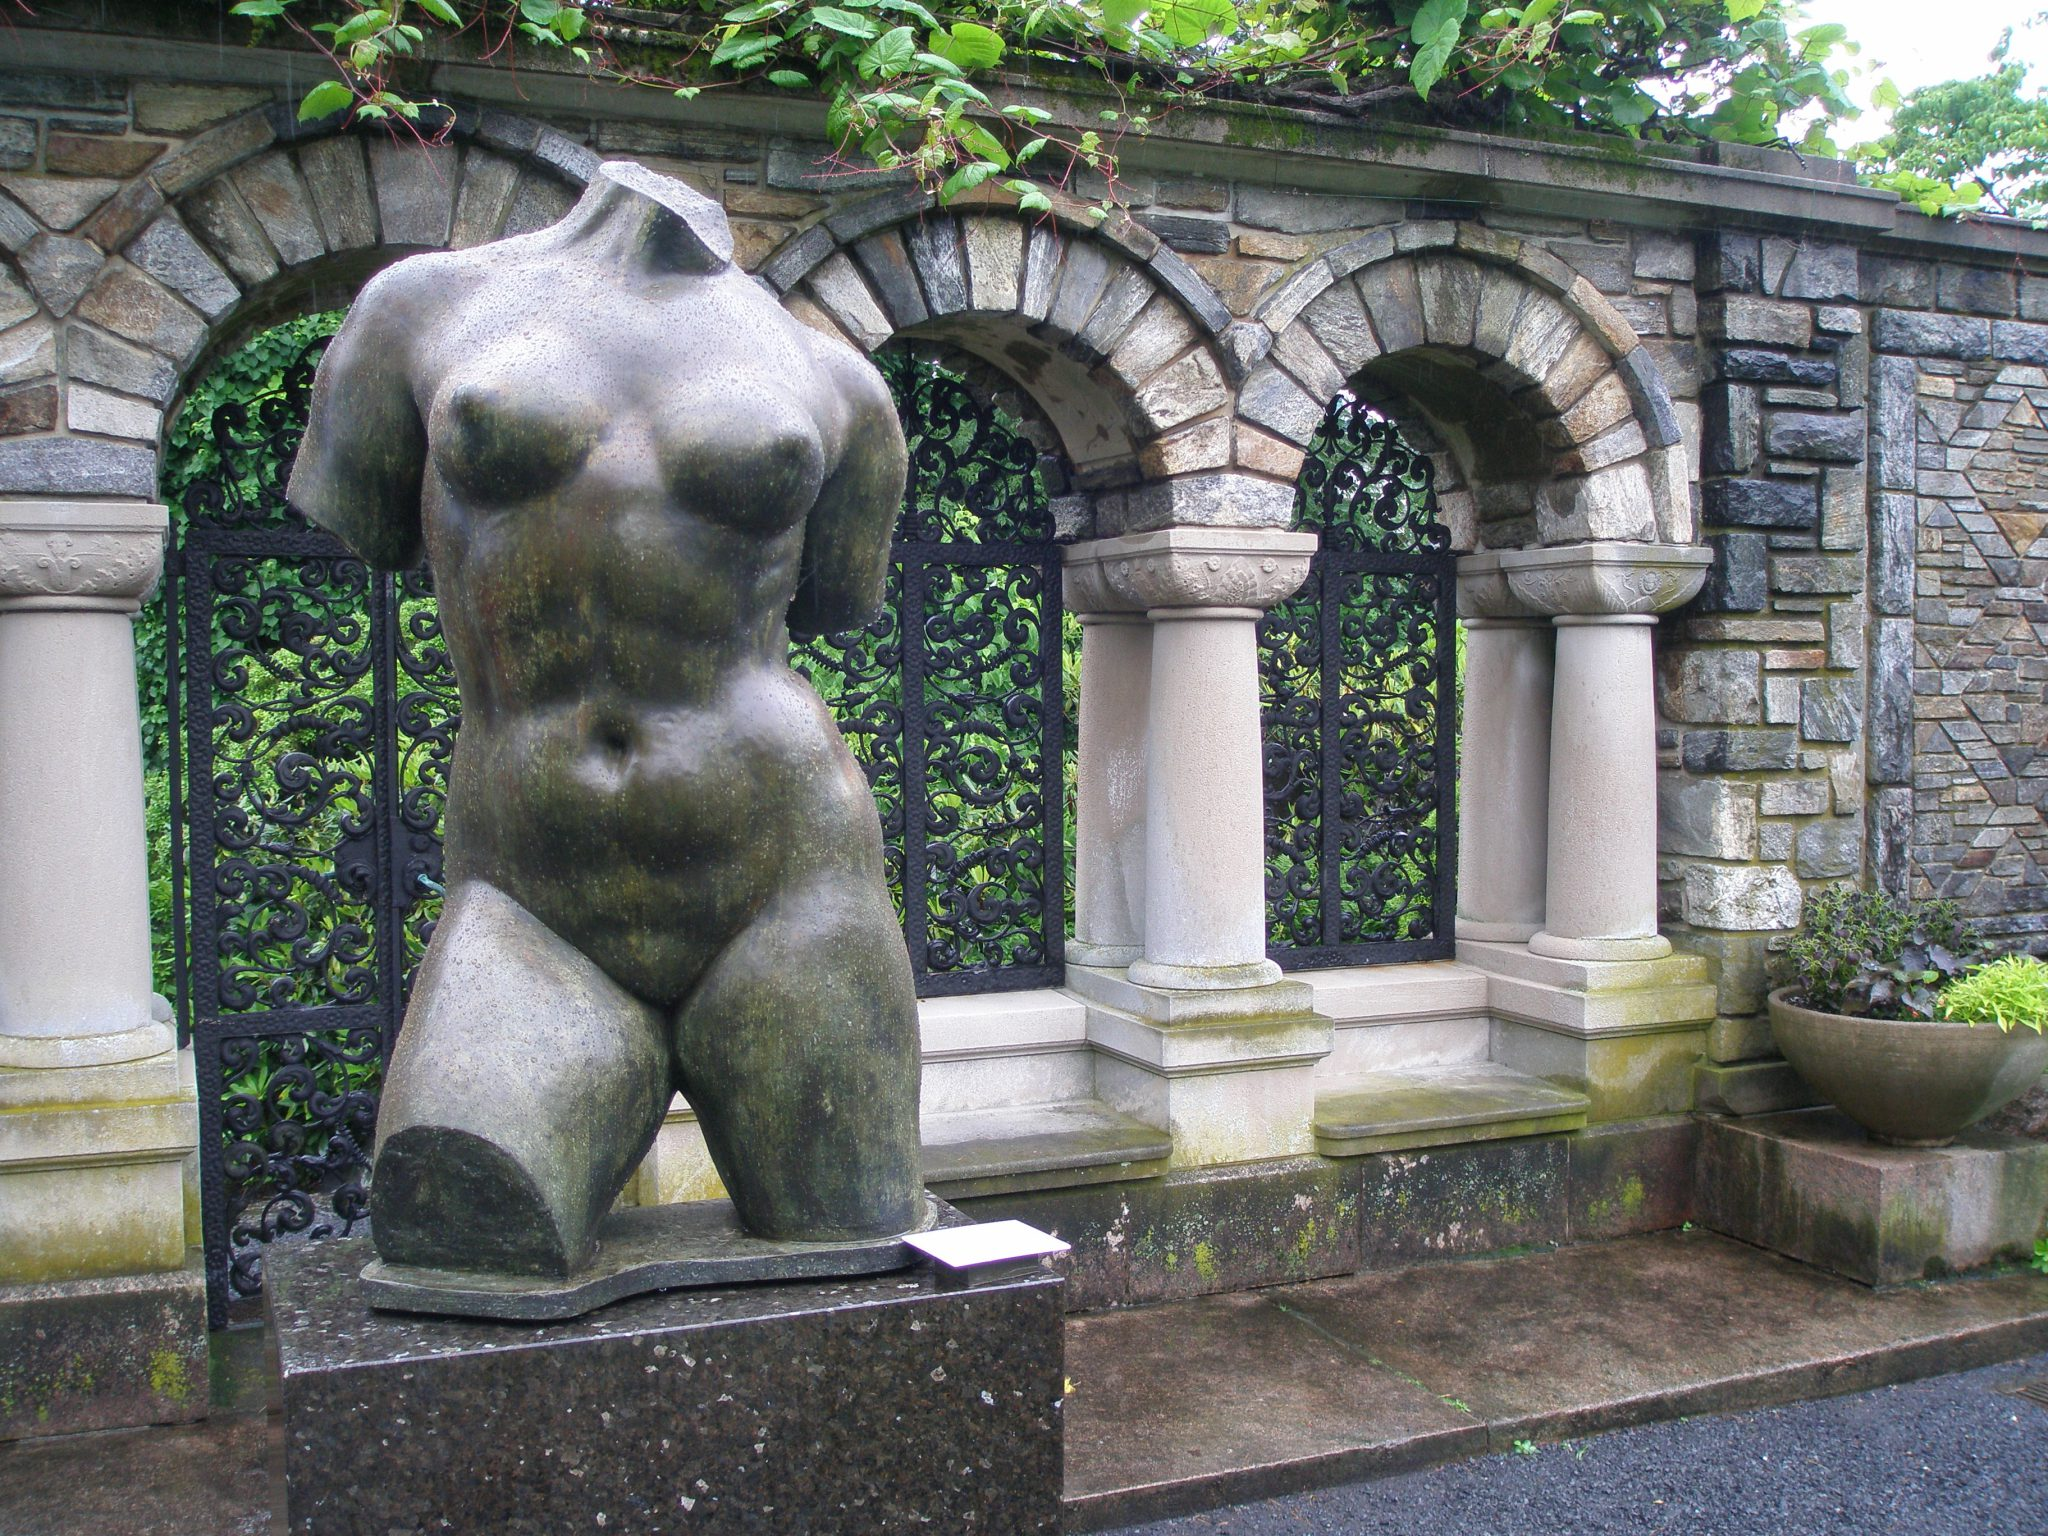 Statue, in from the the grilled wall that separates the Inner Garden from the Brook Garden